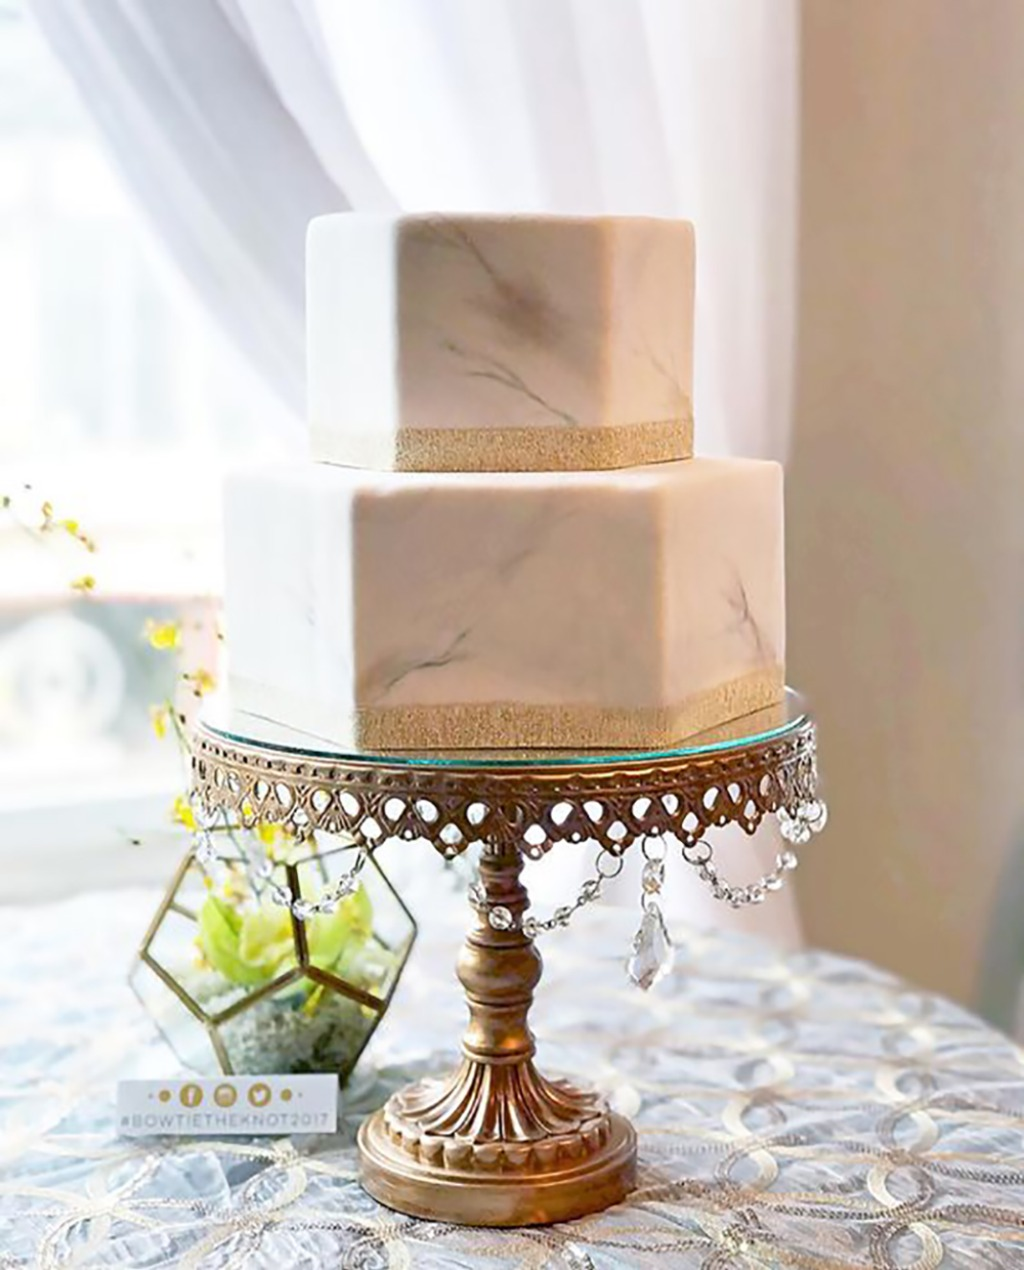 Wedding Cake Inspiration for the Modern Bride...Simple Modern Geometric Marble Tiered Wedding Cake. Wedding Cake Stand created by Opulent